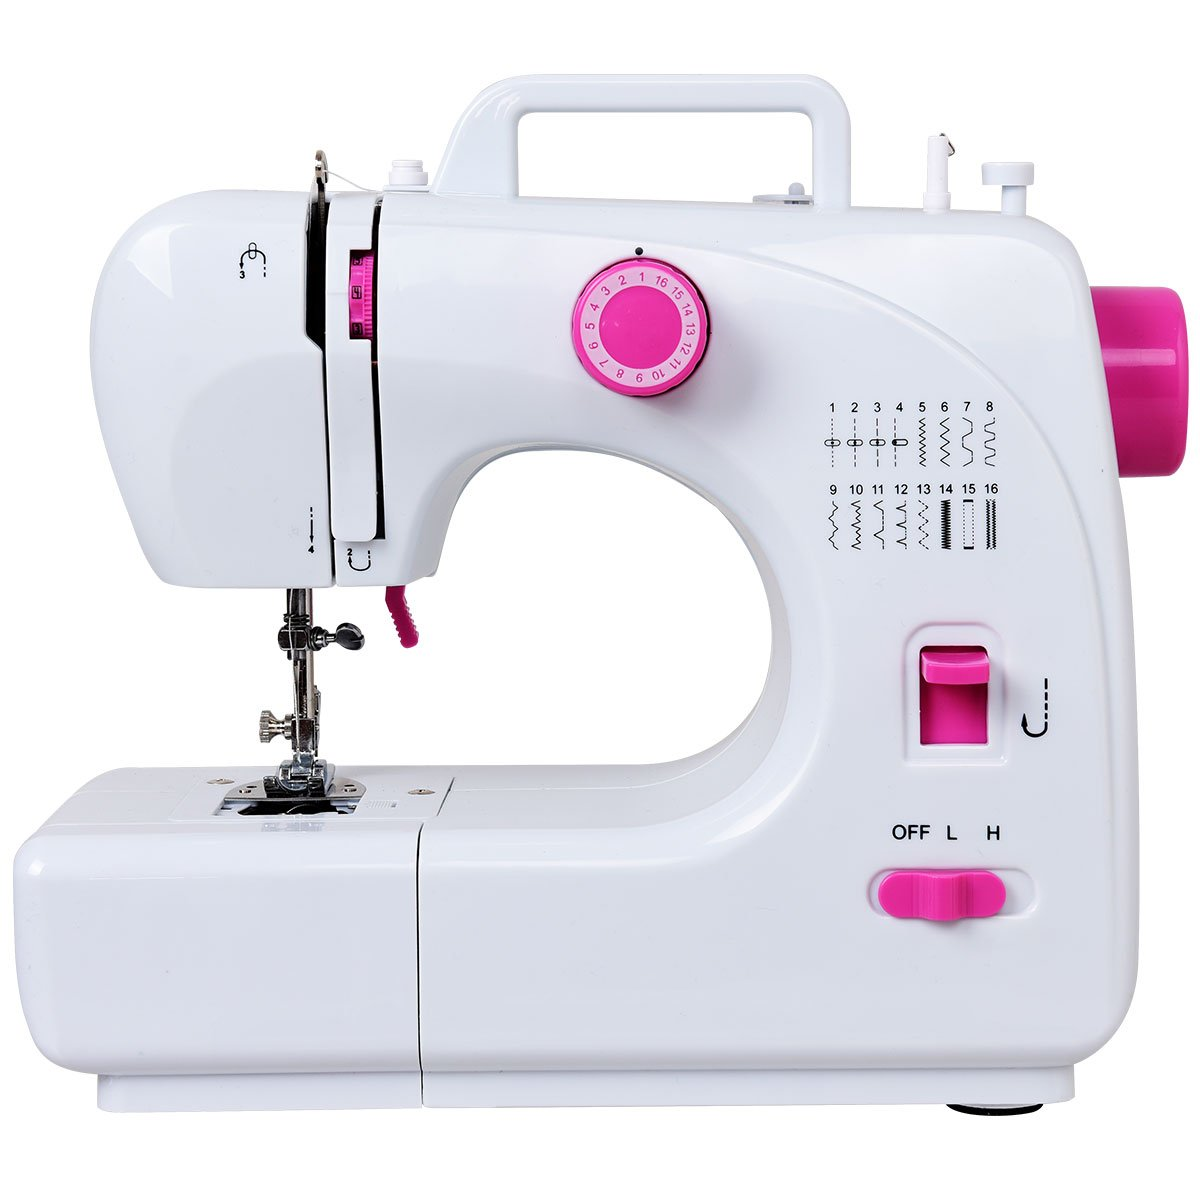 Costway Sewing Machine Portable Multifunctional Sewing Machine with 16 Built-in Stitch Adjustable 2-Speed Automatic Thread Rewind Sewing Machine with Light and Bonus Accessories